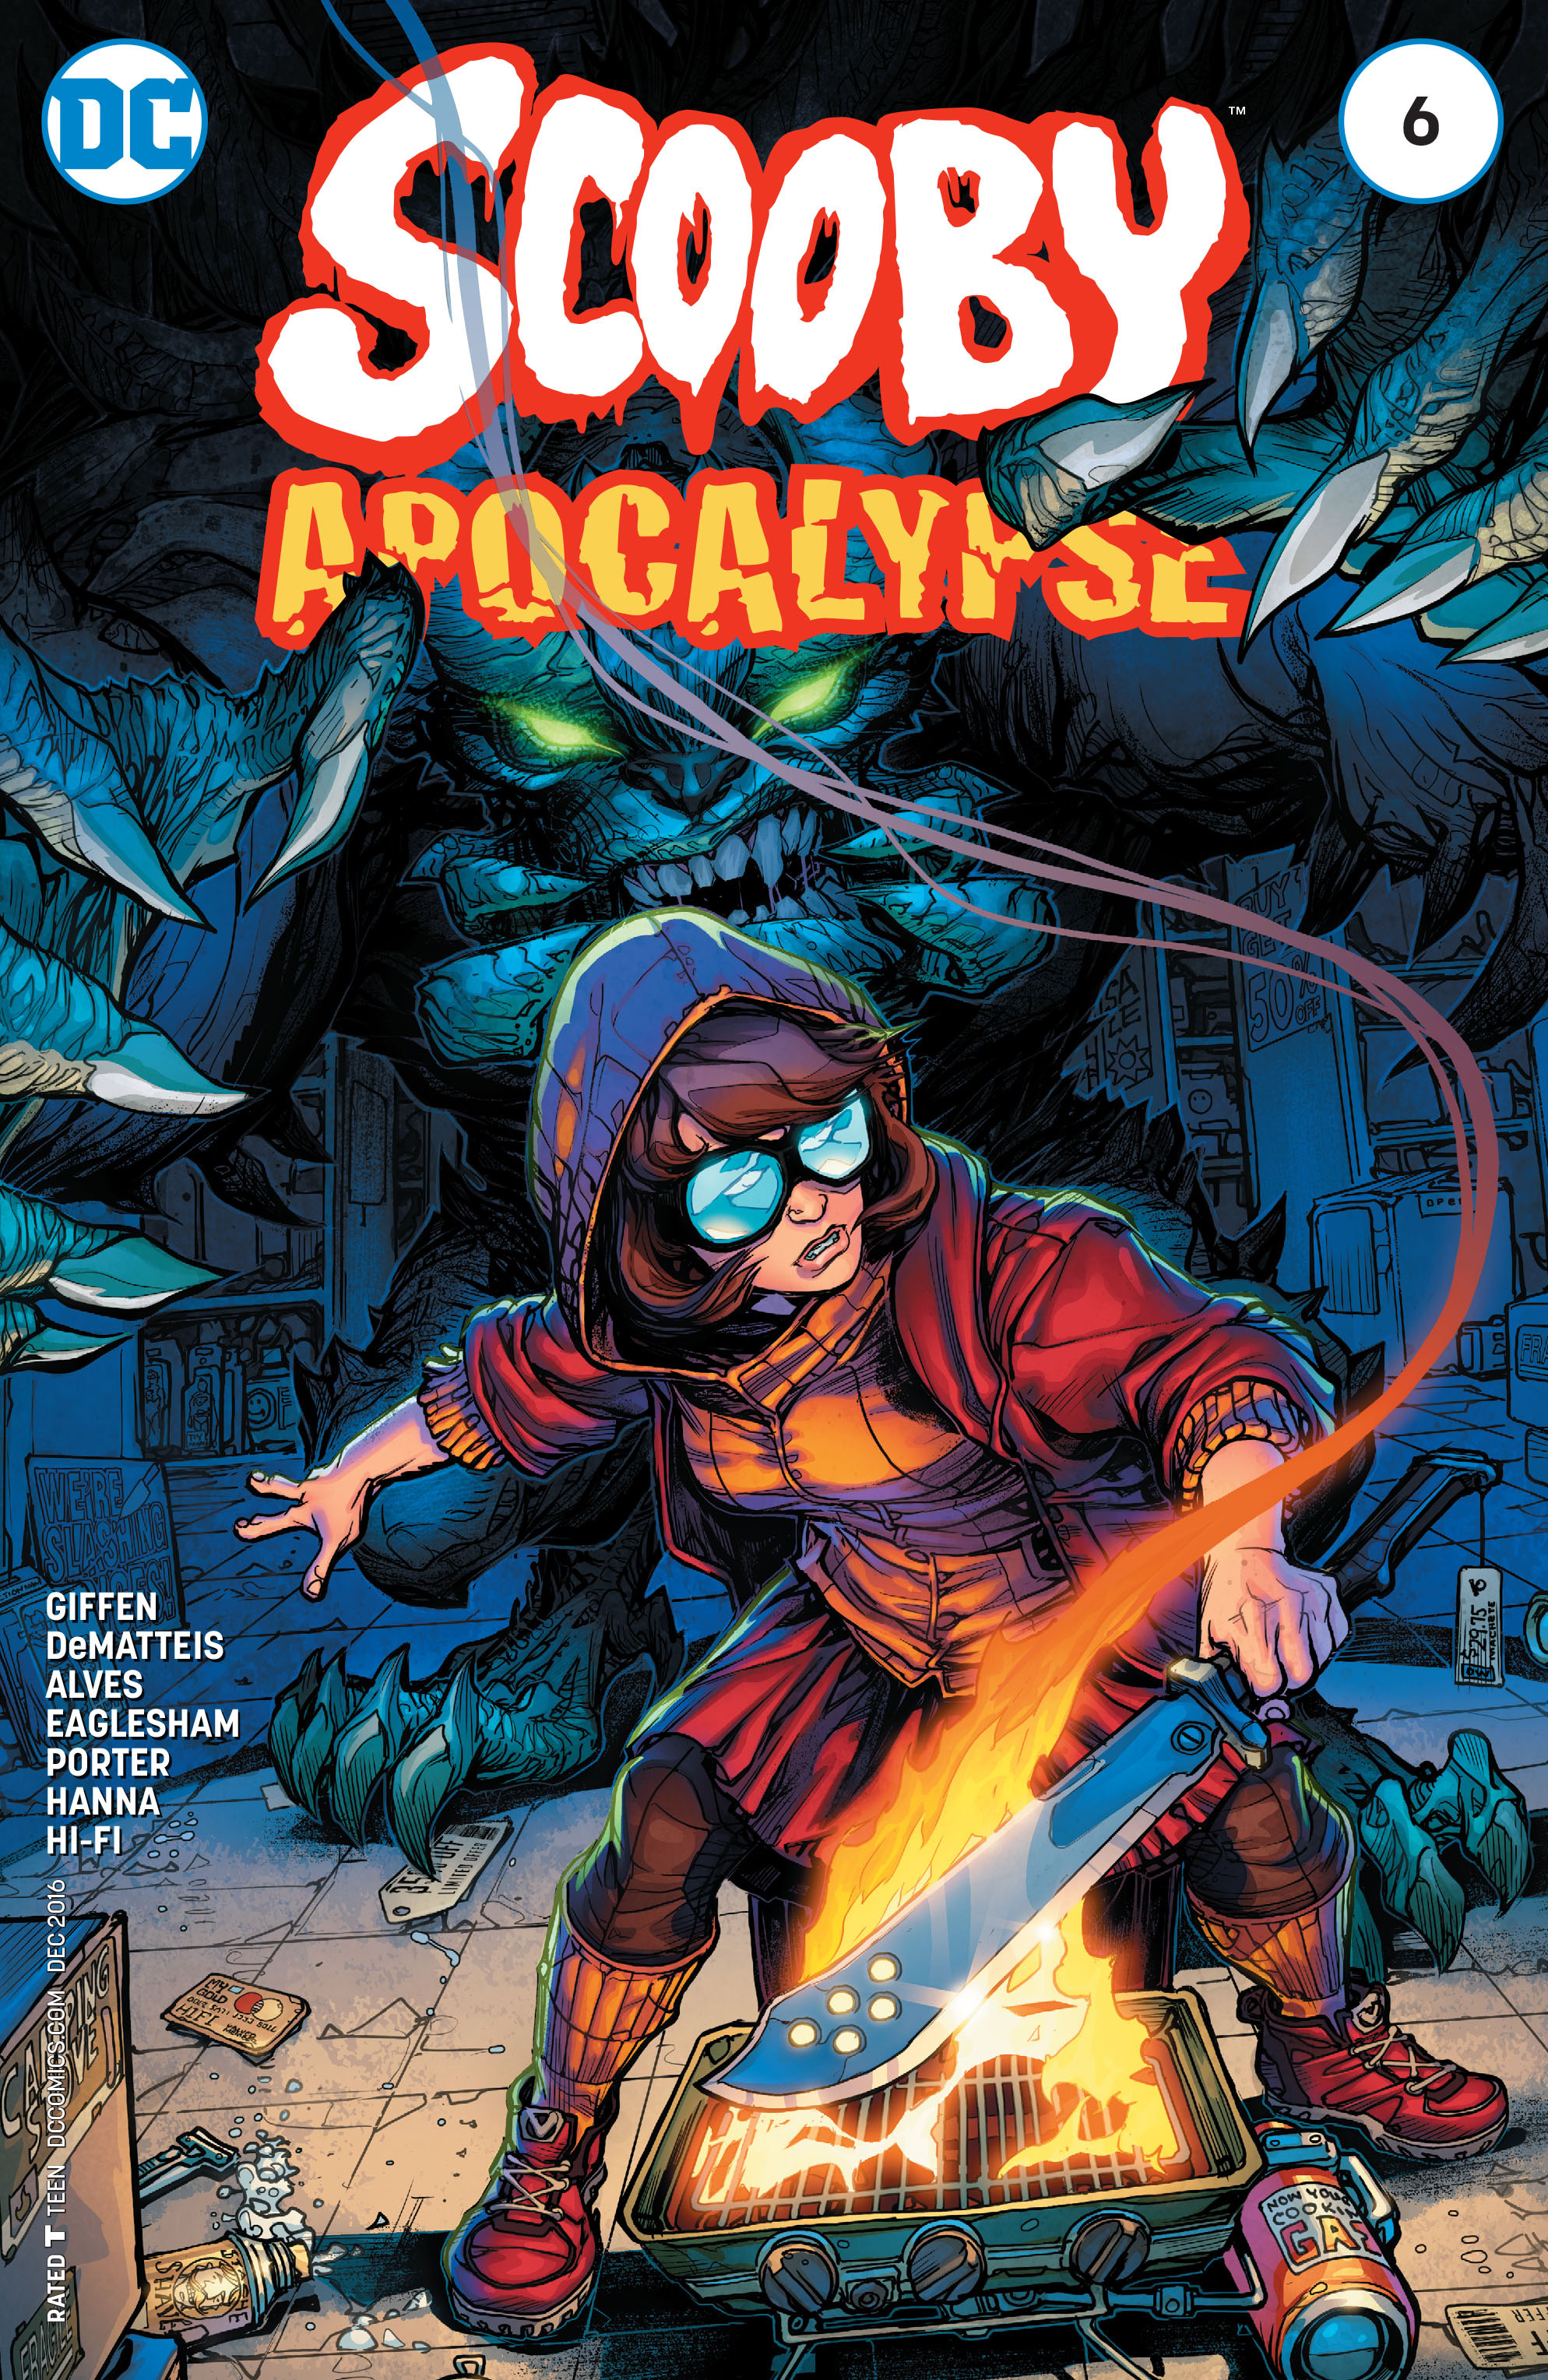 Read online Scooby Apocalypse comic -  Issue #6 - 1